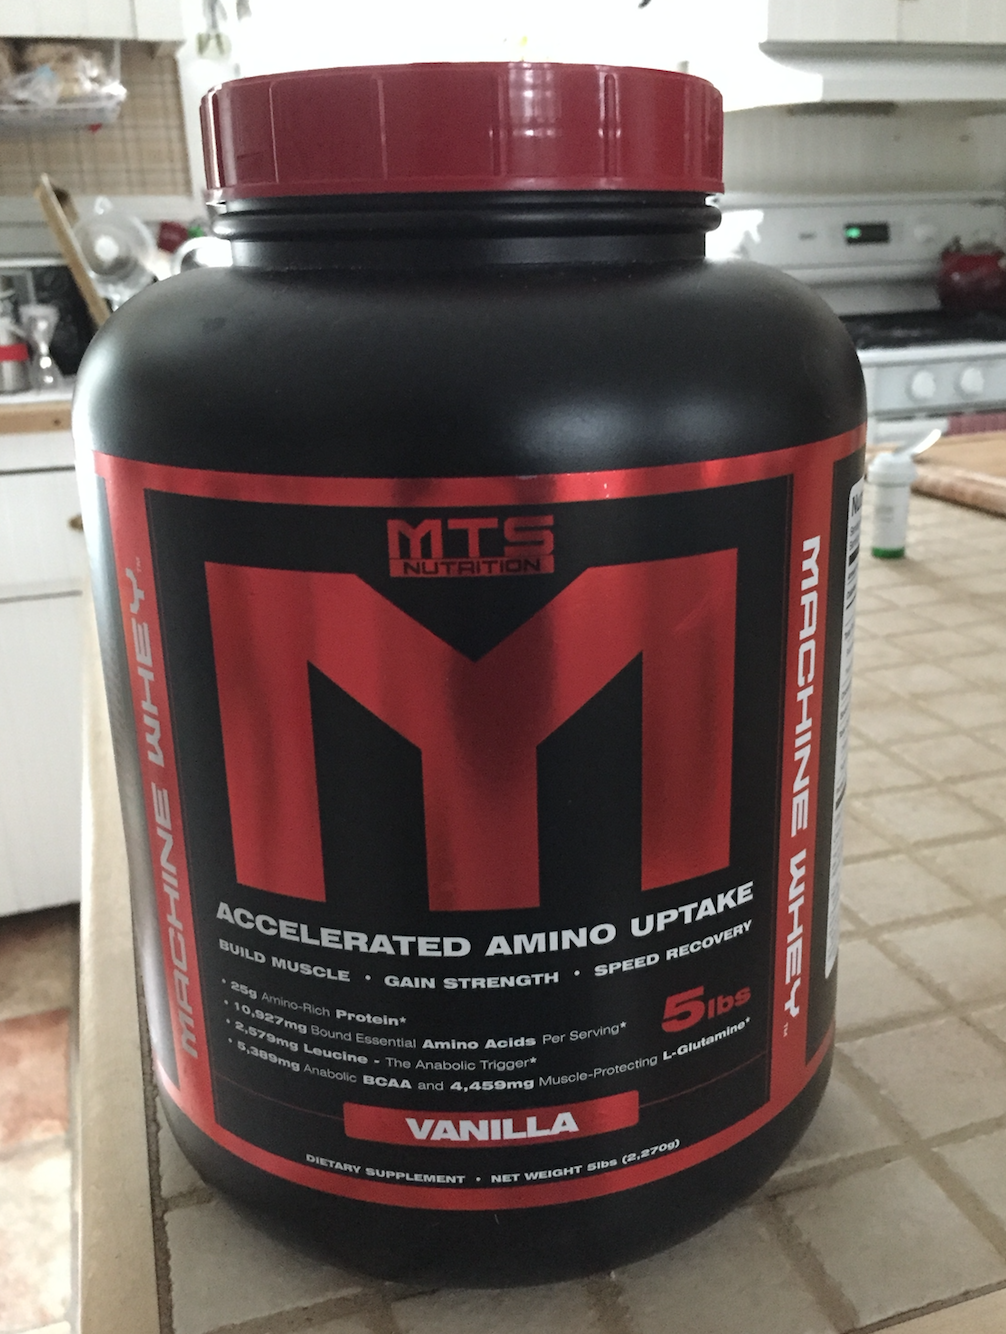 I used to think this stuff was some illegal substance that inflated your muscles. Turns out it's just vanilla protein.